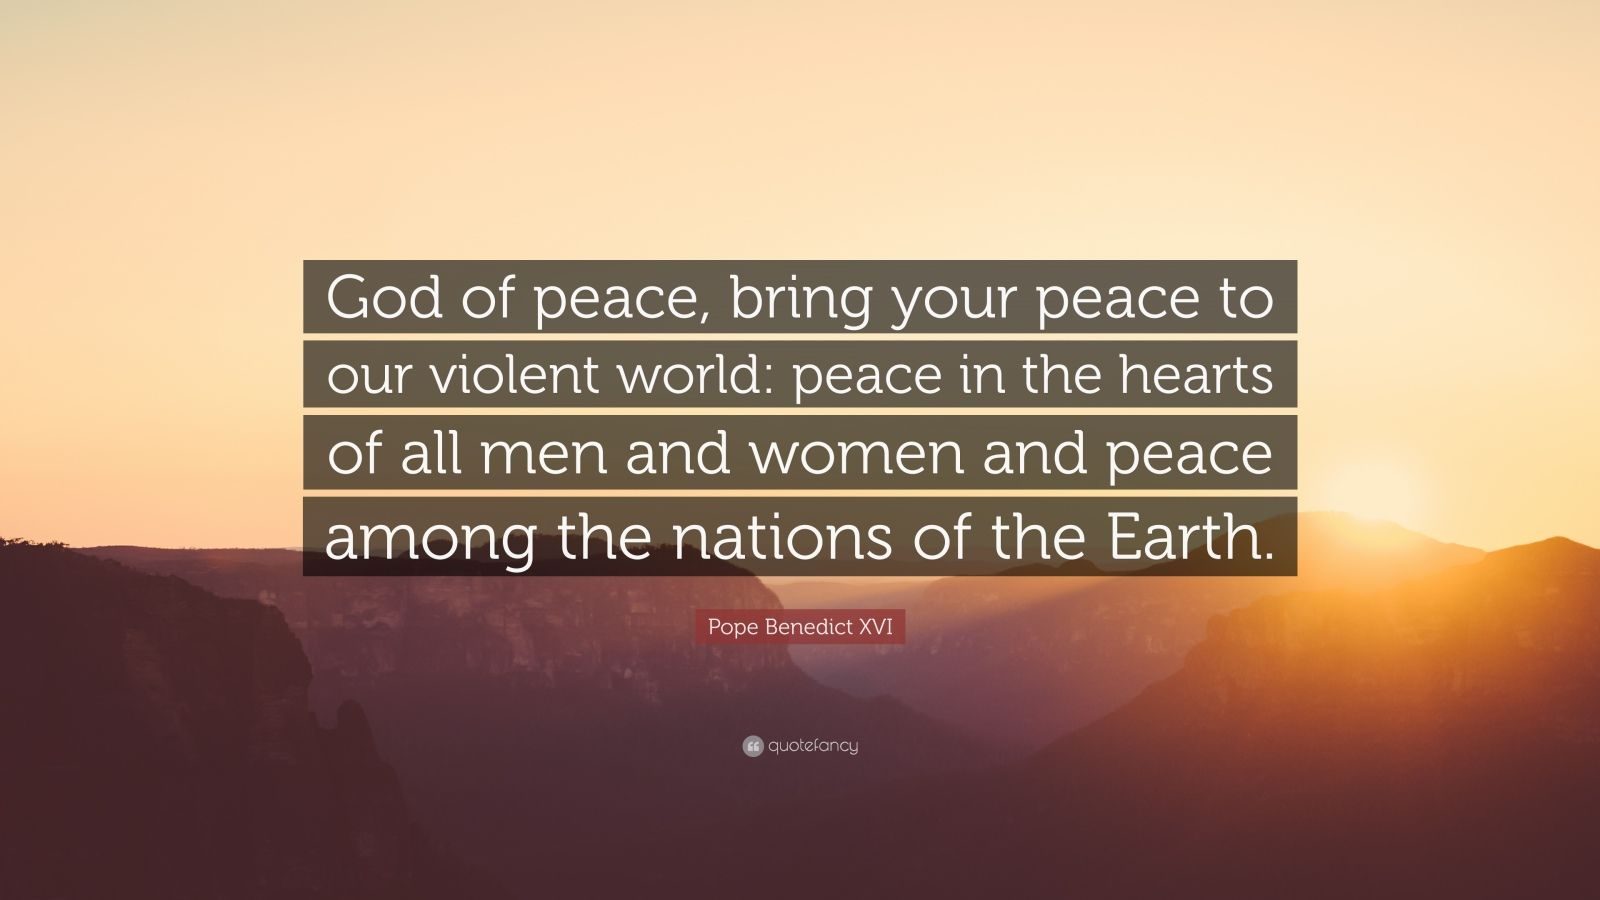 """Pope Benedict XVI Quote: """"God of peace, bring your peace to our violent world: peace in the hearts of all men and women and peace among the nations of the Earth."""""""